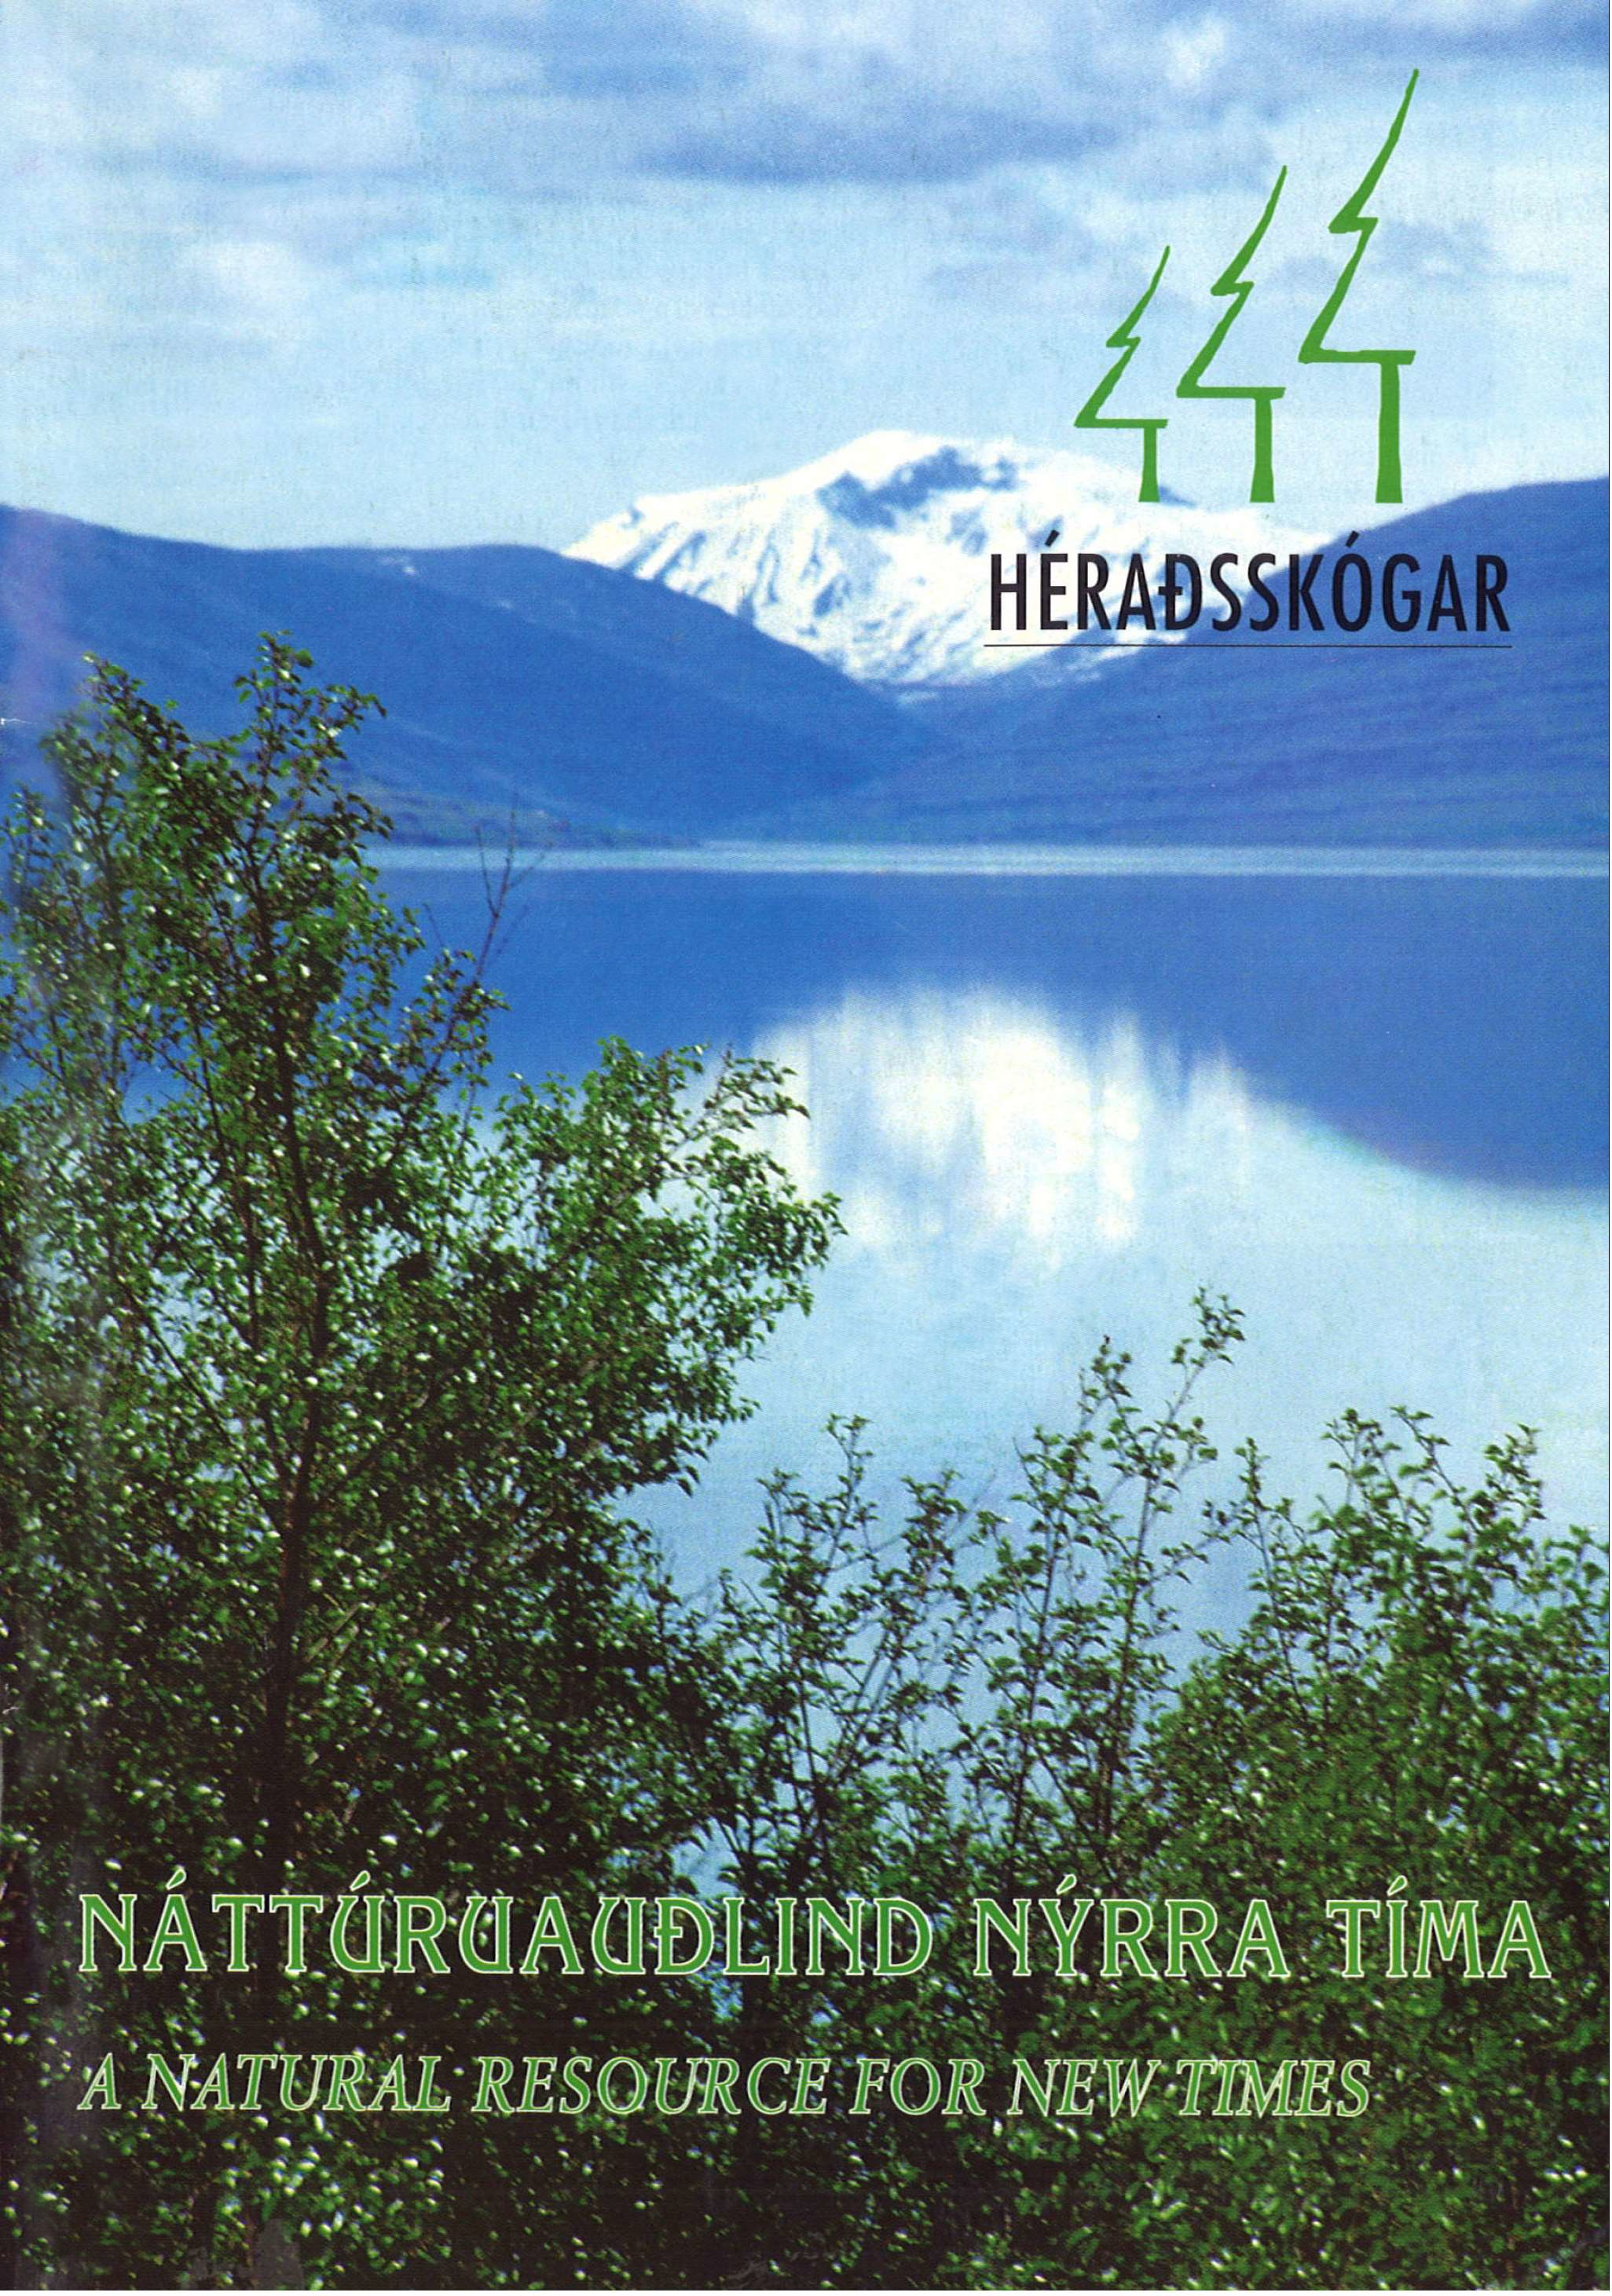 Front cover of the brochure Héraðsskógar - A Natural Resource for New Times